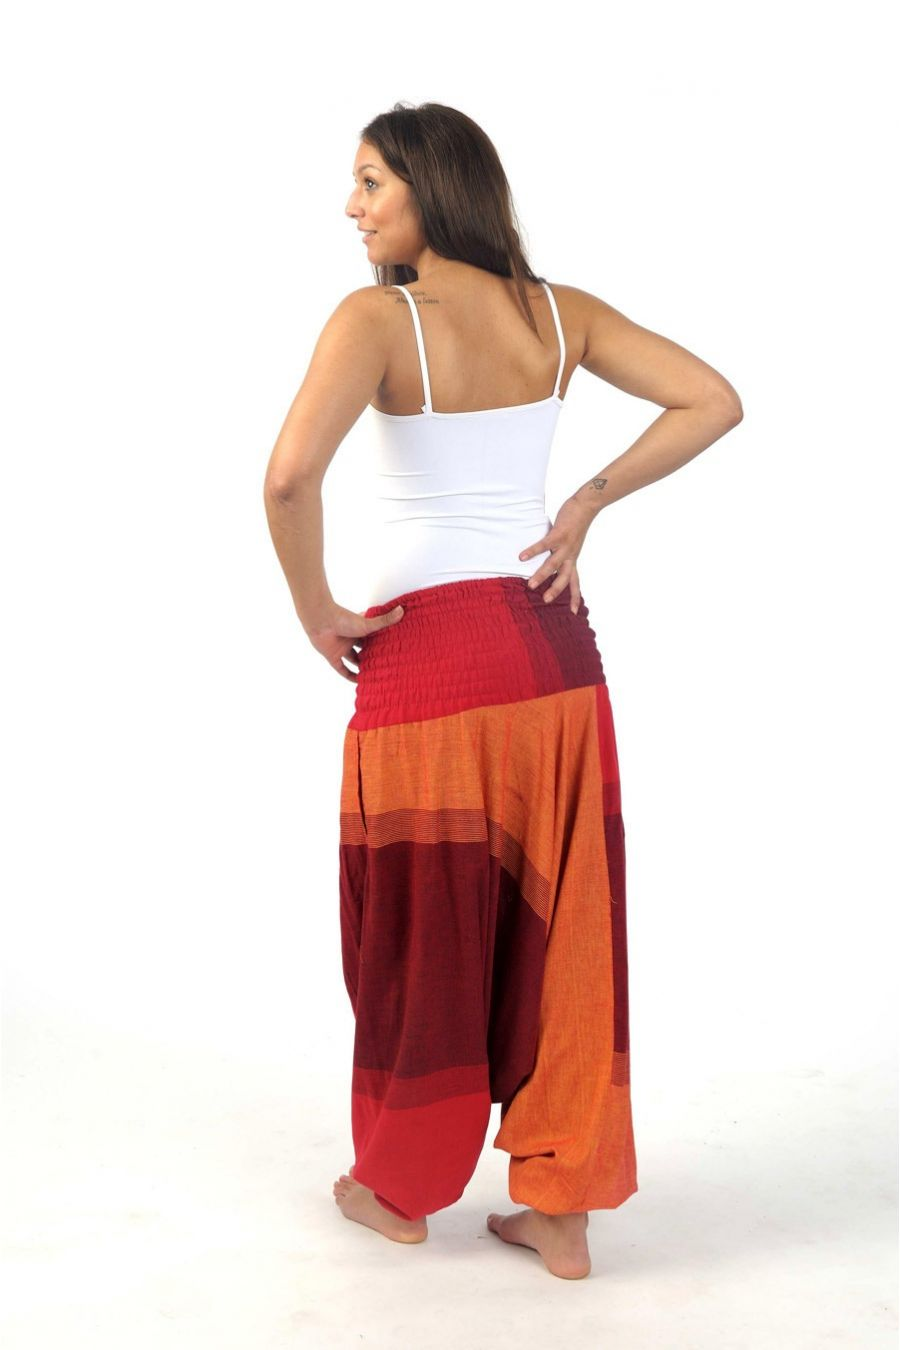 The same classic Bohemian Island harem pants but in Larger size! With a bigger waistband and longer measurements around the hips and thighs, these beautifully comfortable cotton plus size harem pants are going to be ideal for approx. US women's size and mens We currently have 54 designs available in this size.